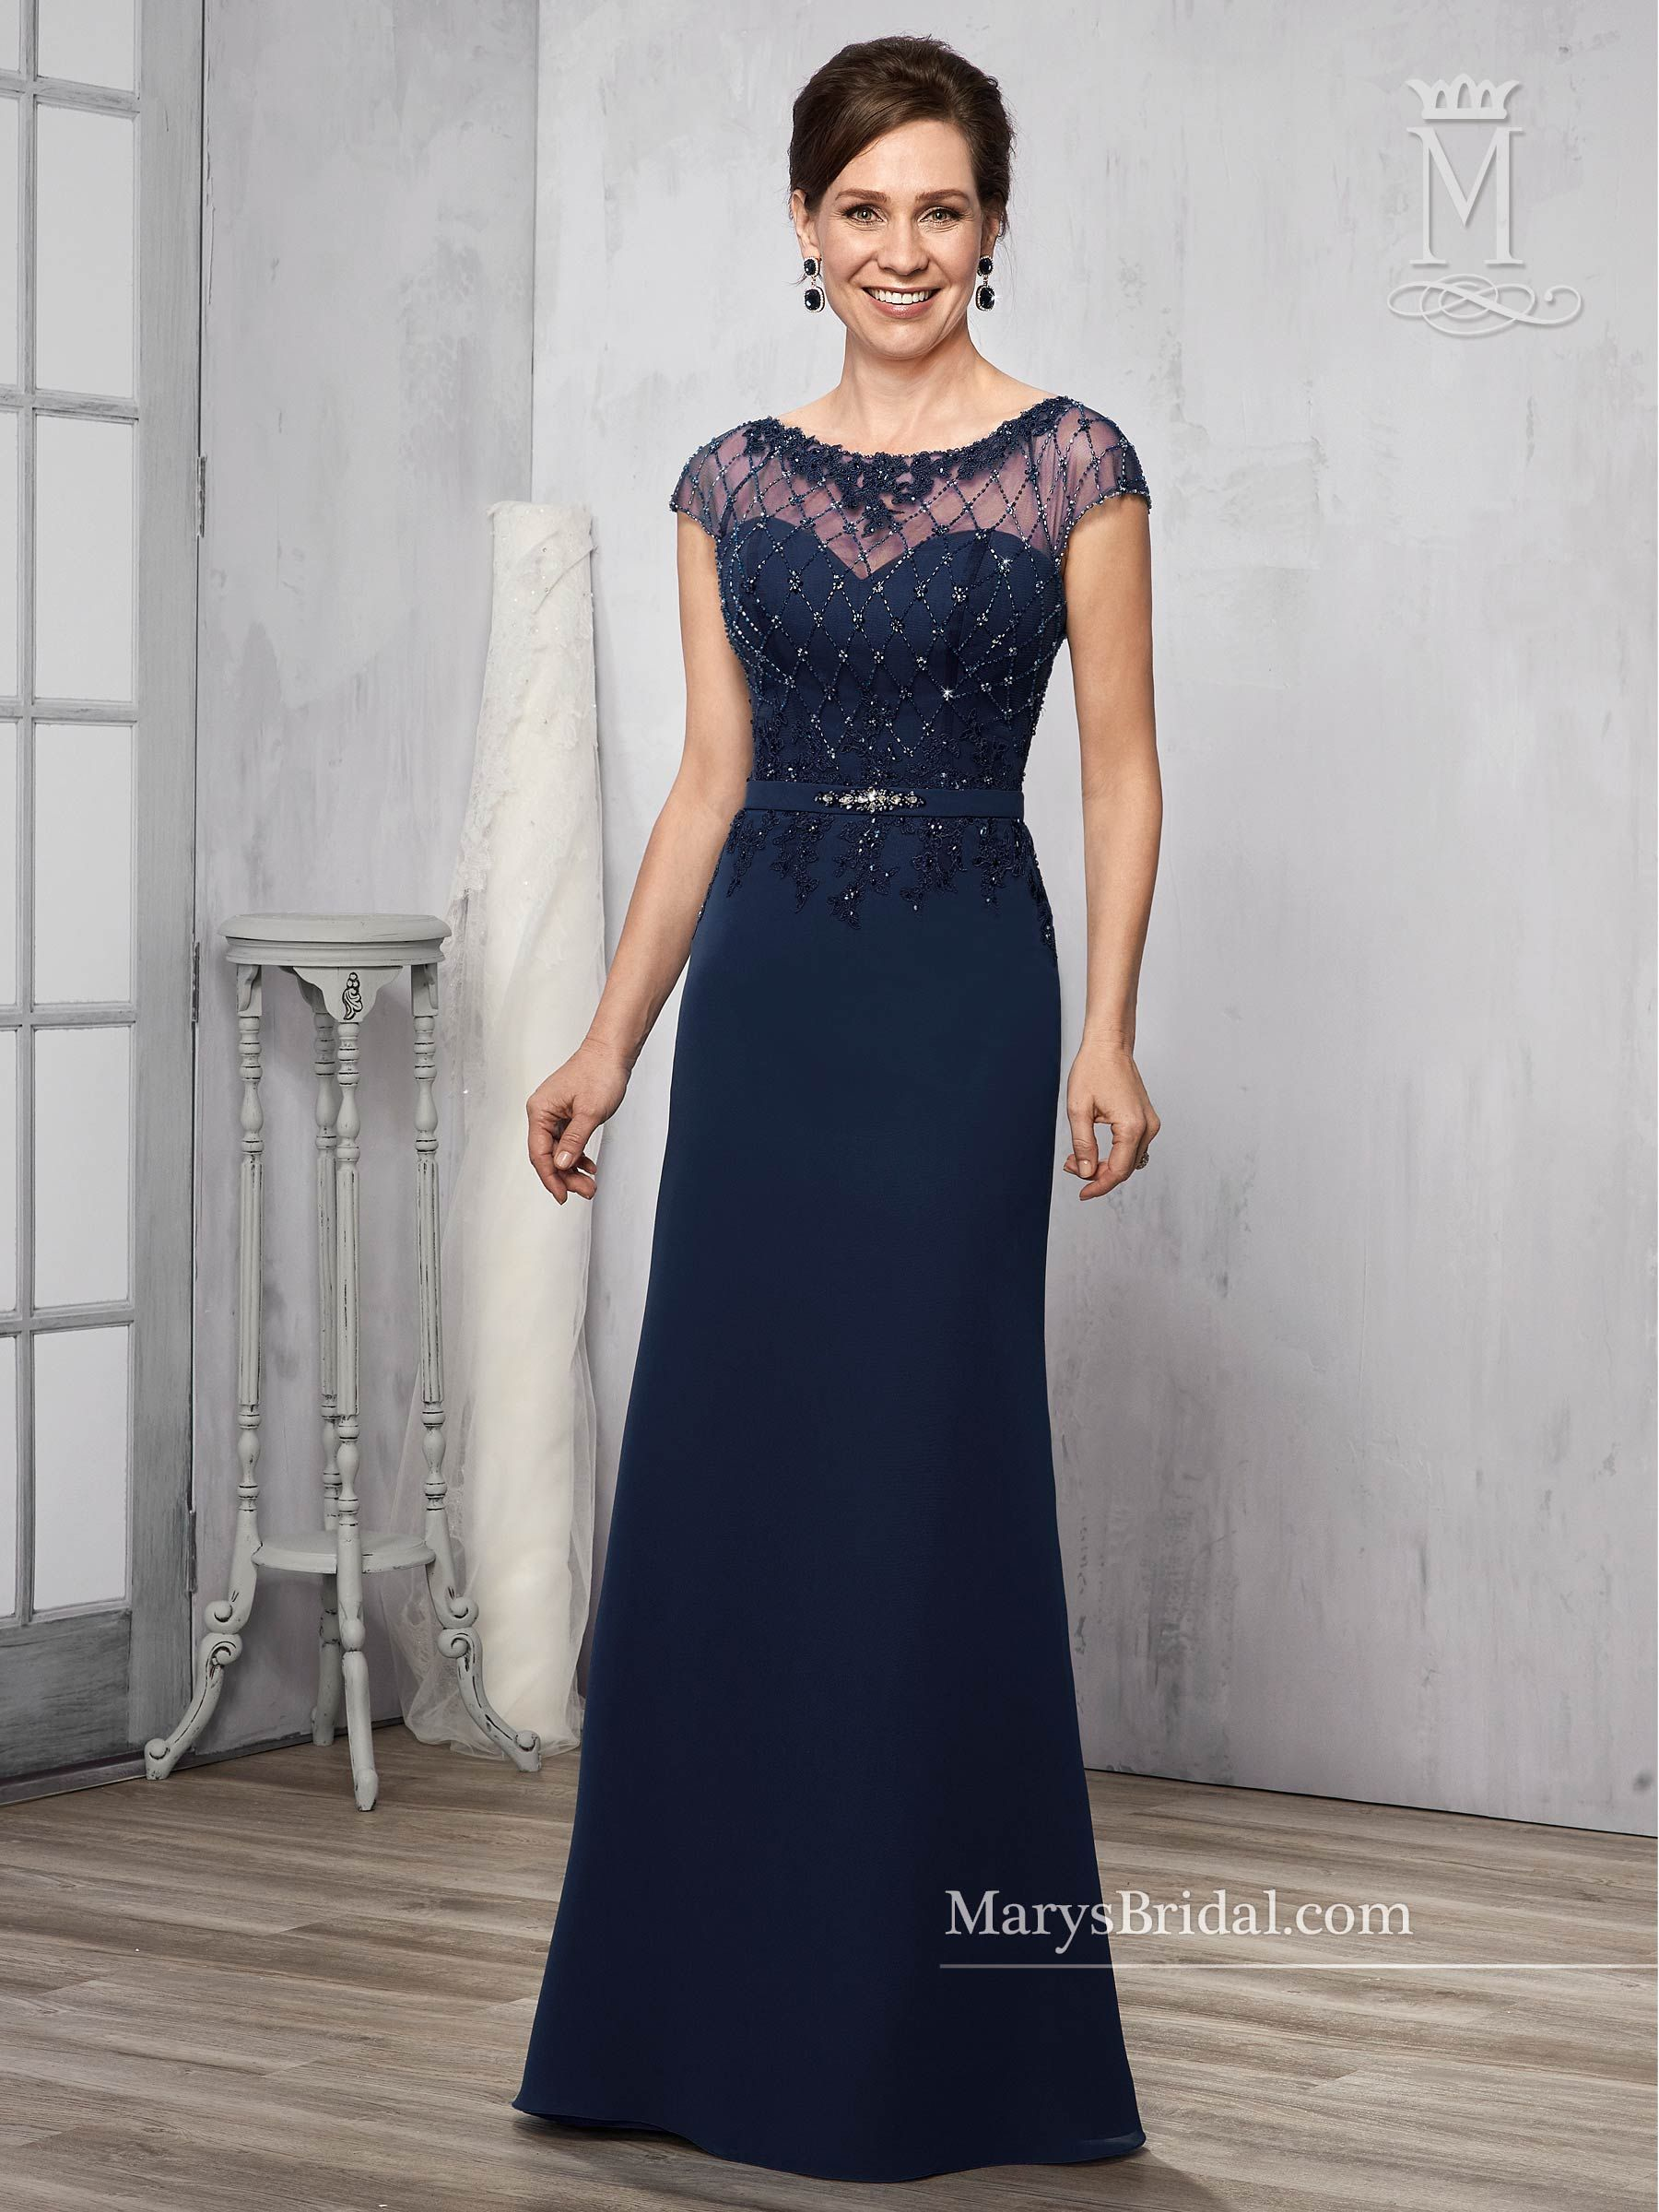 Wedding dresses for mother of the bride  Pin by Blanca ZilliHuerta on my dress  Pinterest  Bride gowns